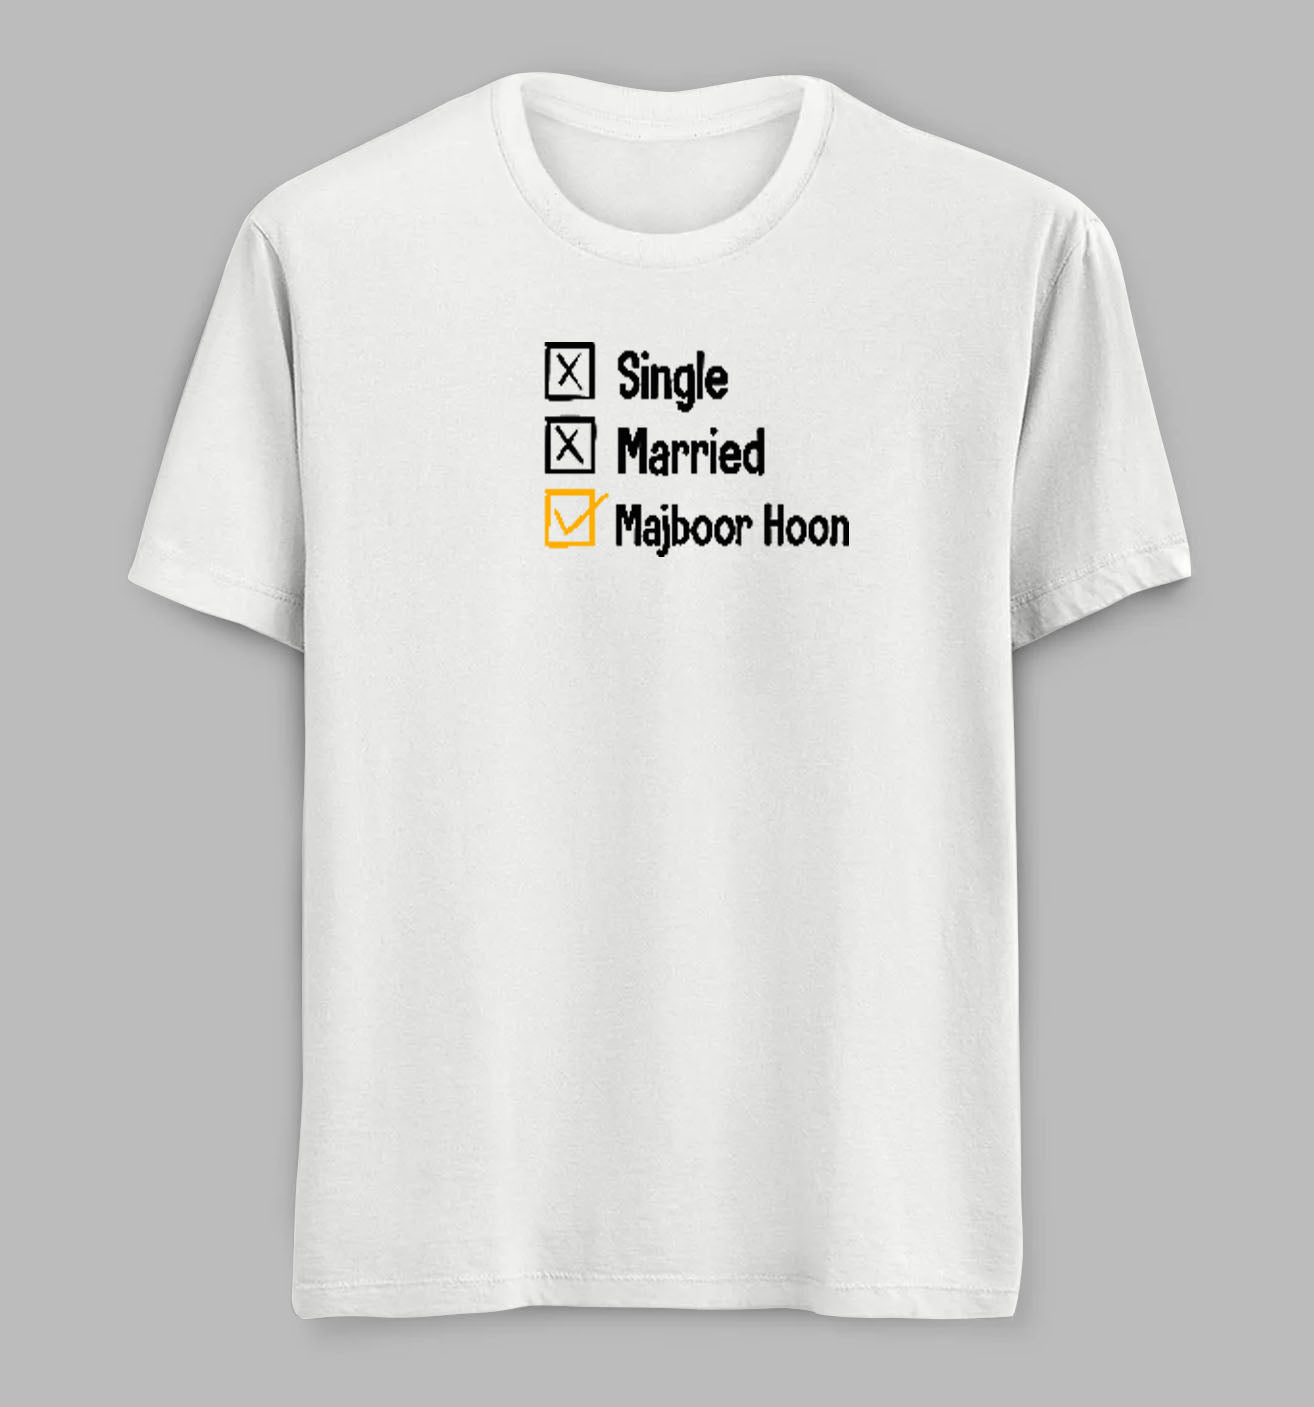 Singal Married Majboor Hoon Tees/Tshirts